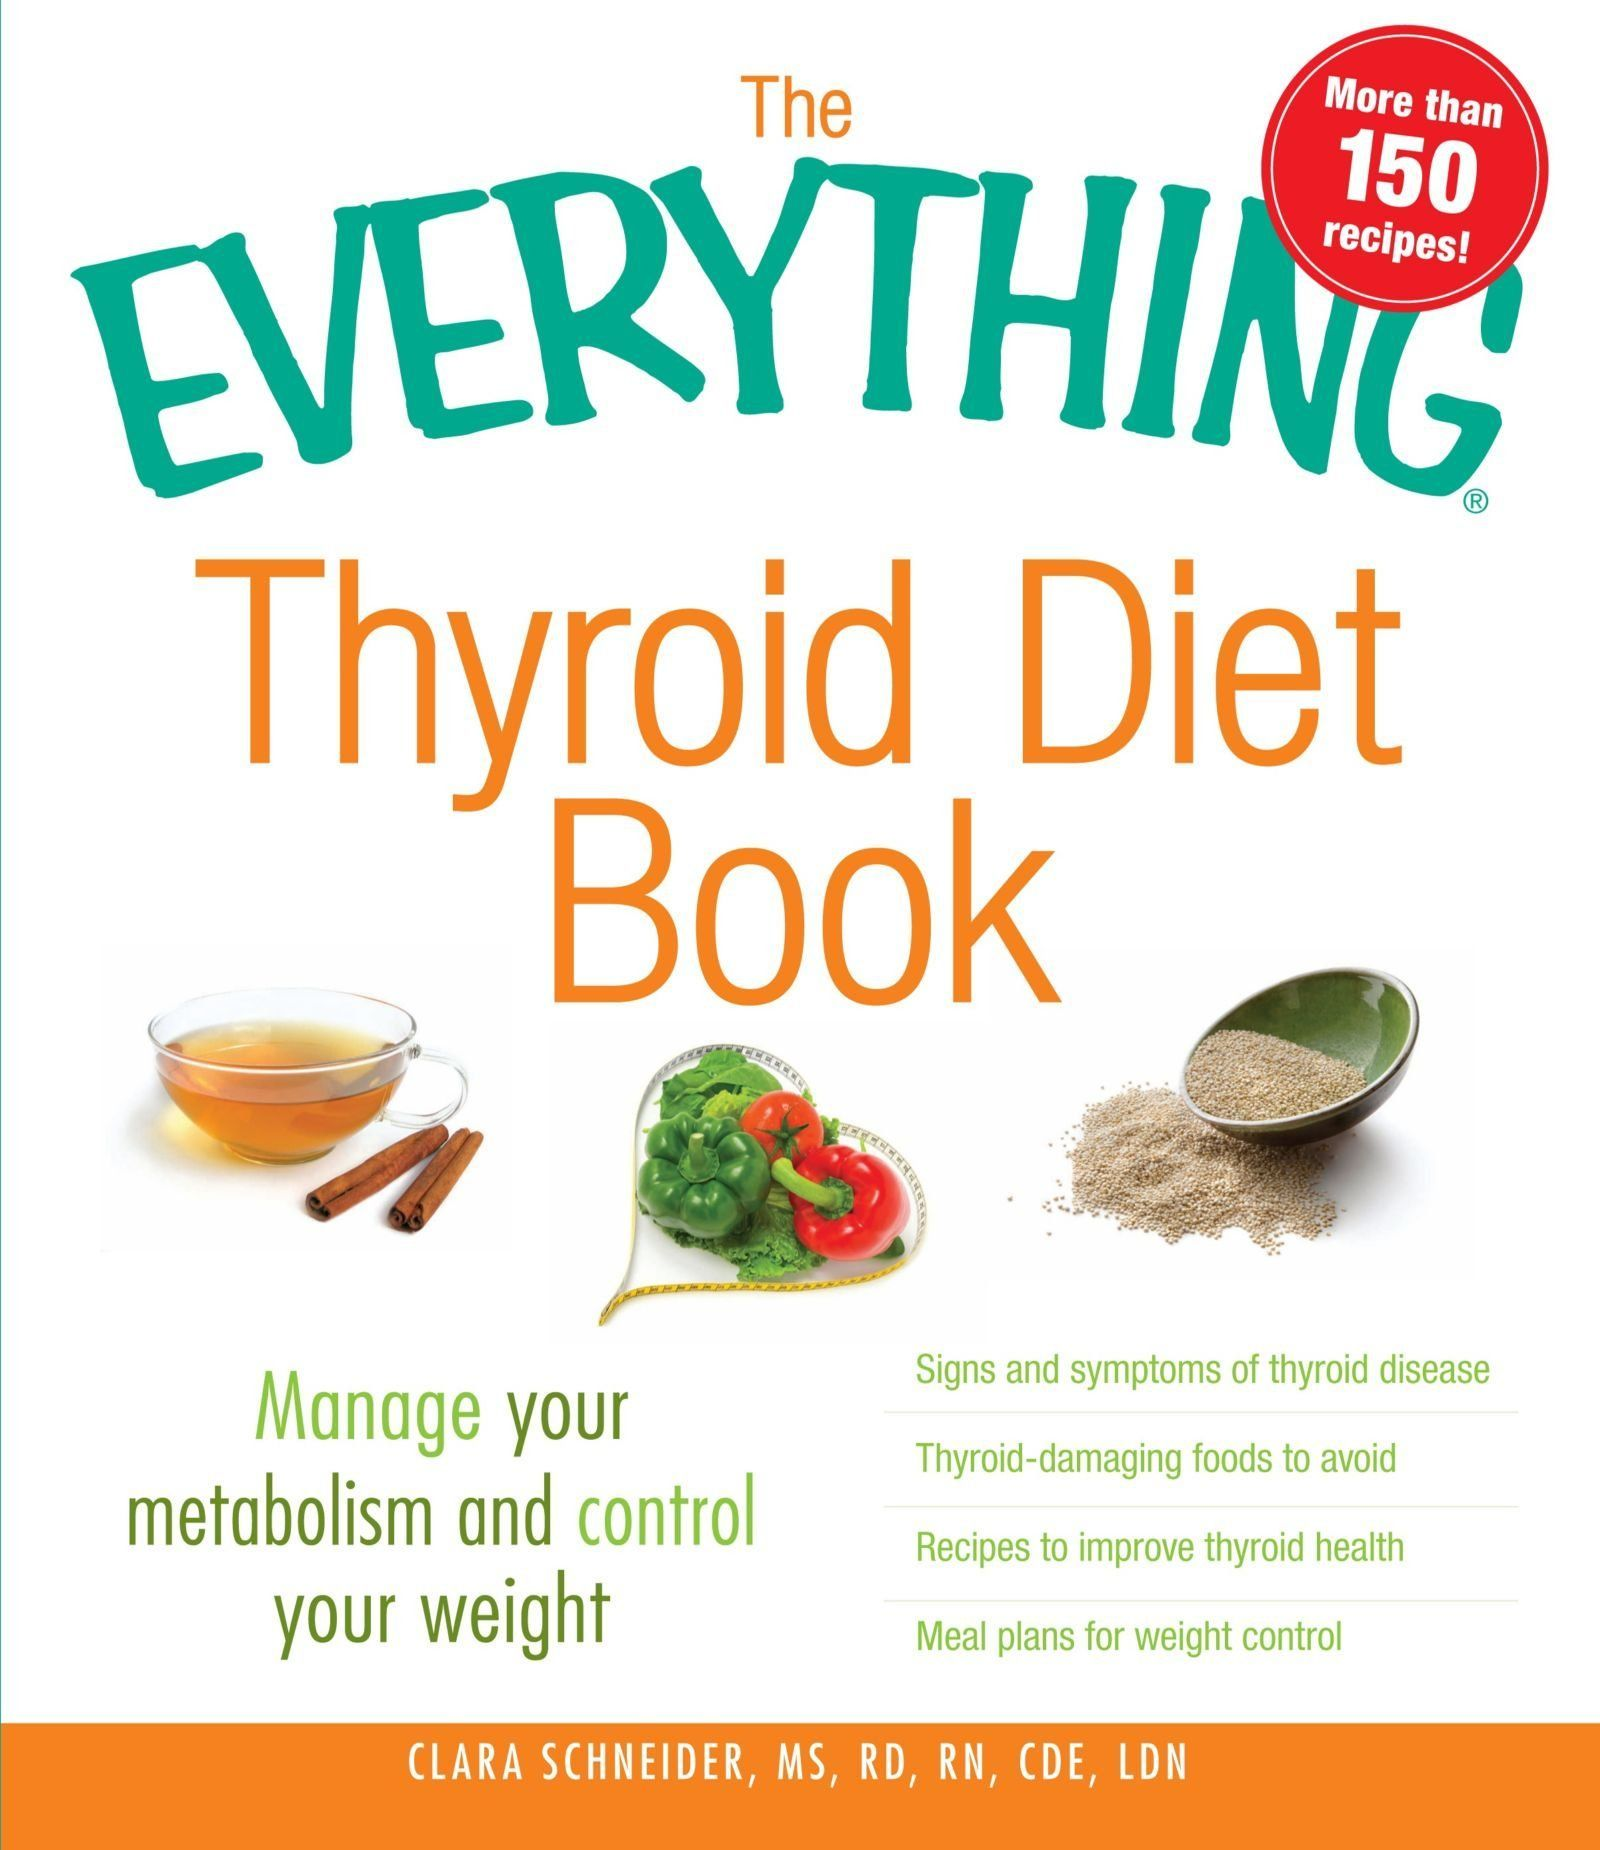 How Nutrition Plays a Role in Maintaining Thyroid Health